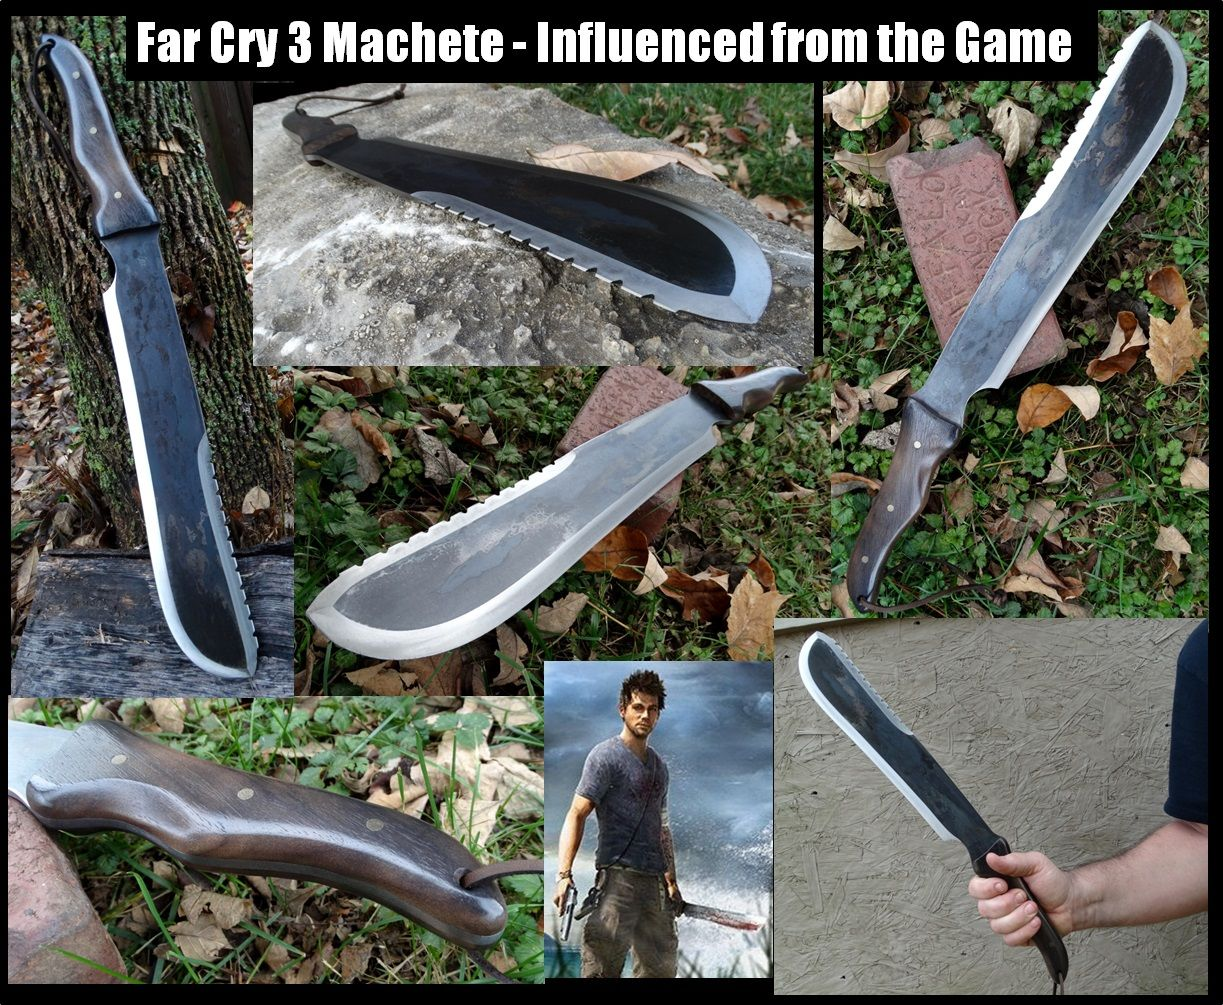 Our Far Cry 3 Machete This Machete Is Influenced From The Game Far